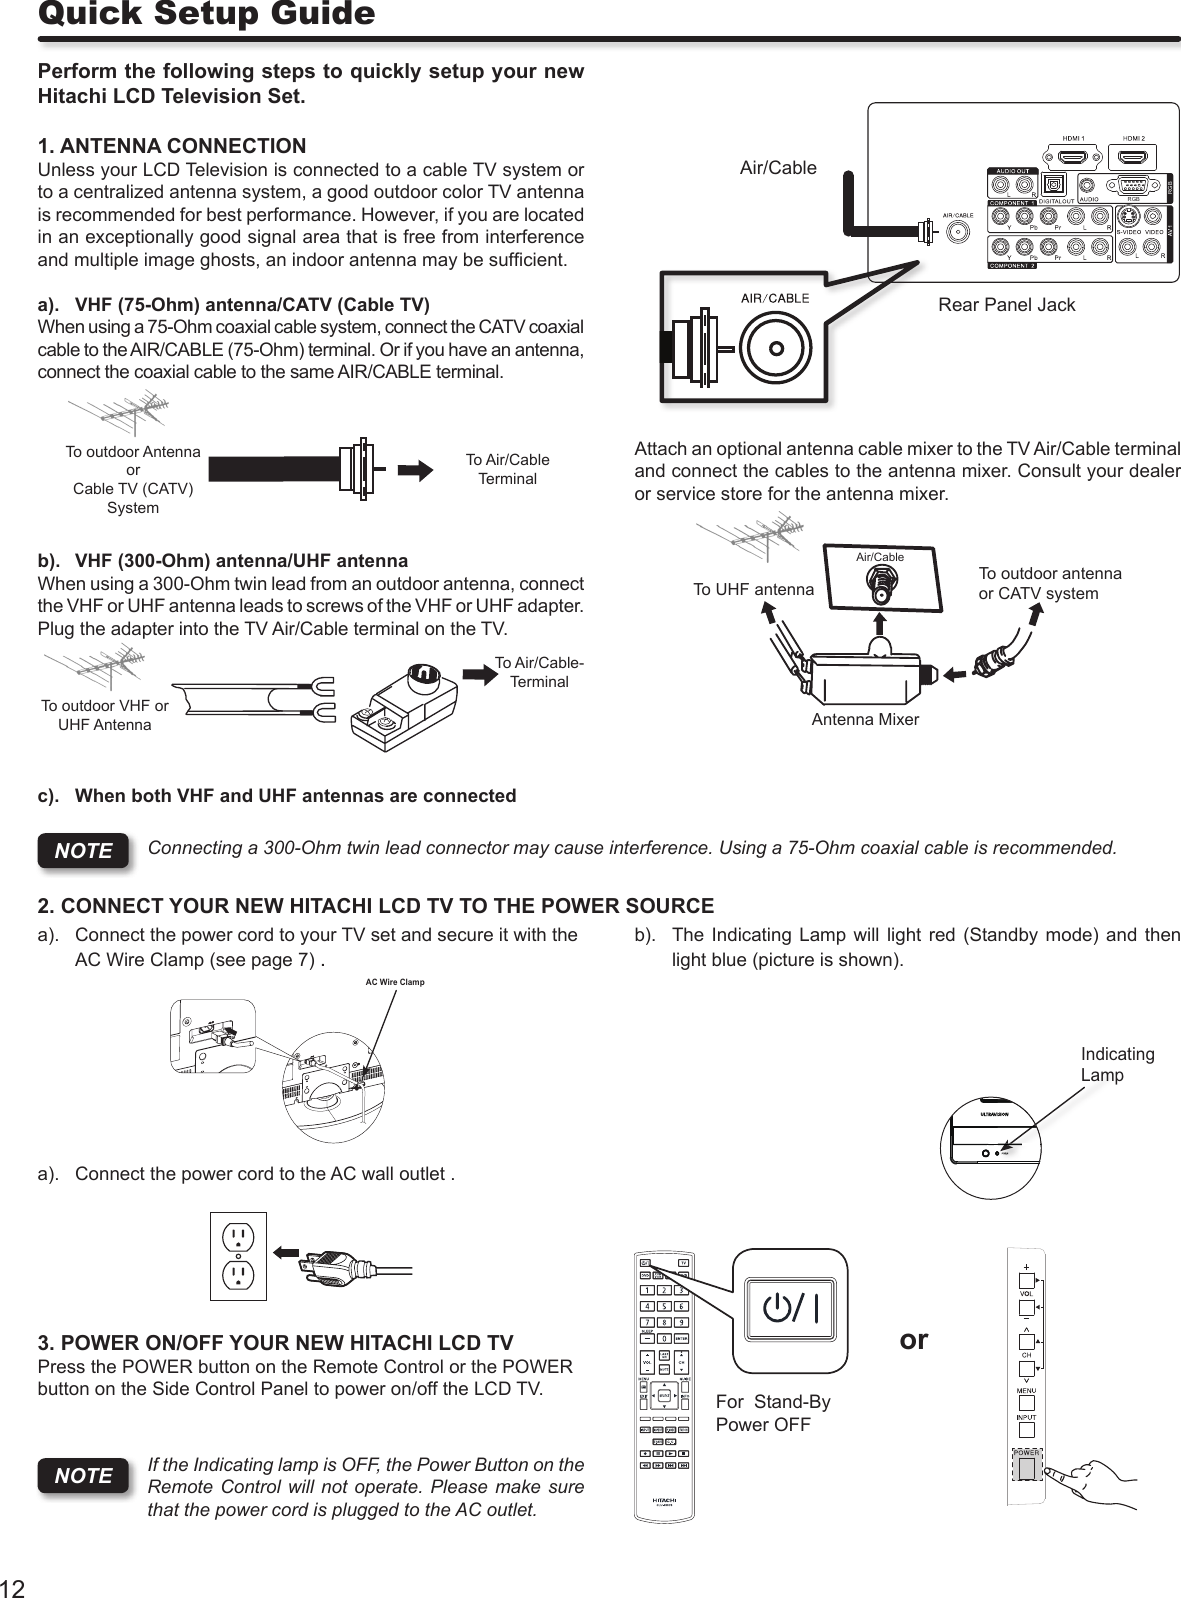 Hitachi Ultravision L32S504 Users Manual Instruction Book 2009